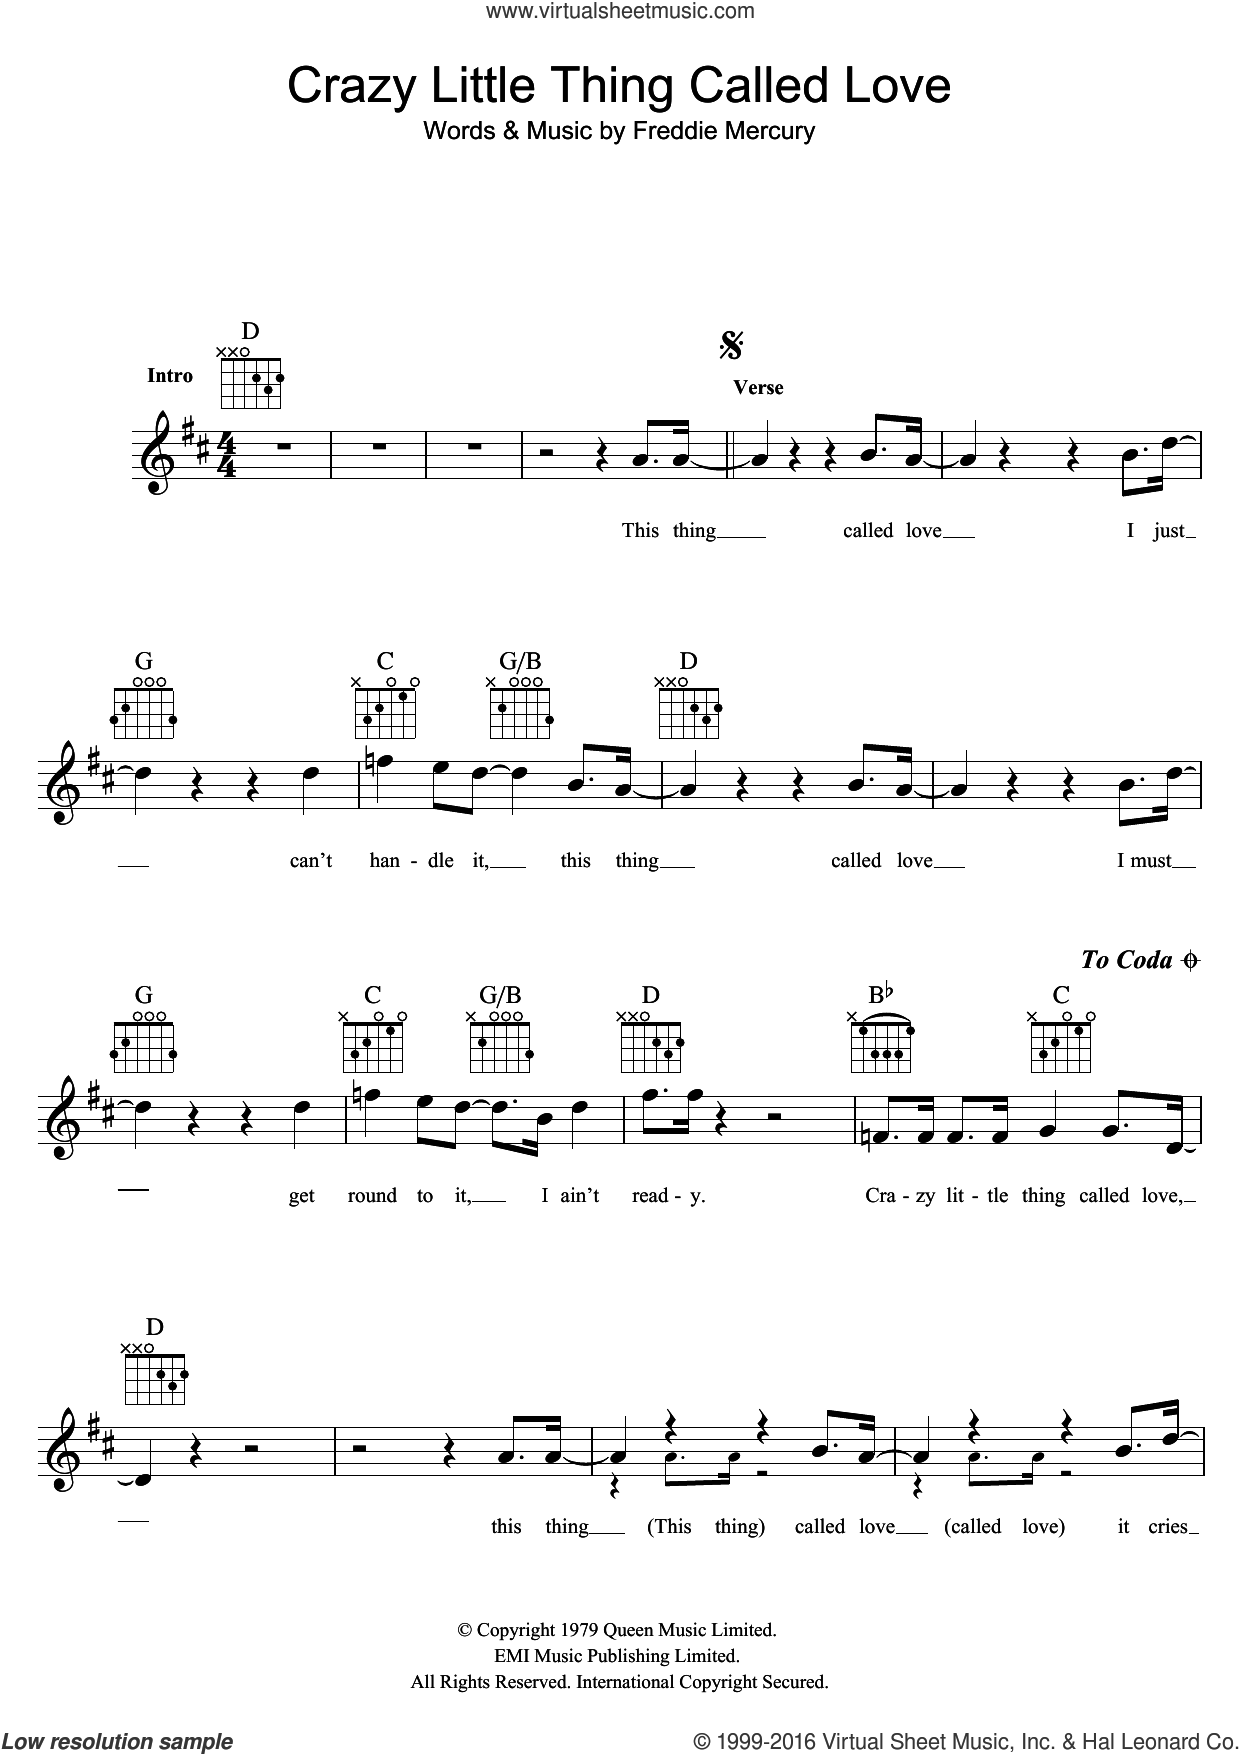 Crazy Little Thing Called Love sheet music for voice and other instruments (fake book) by Queen and Freddie Mercury, intermediate skill level